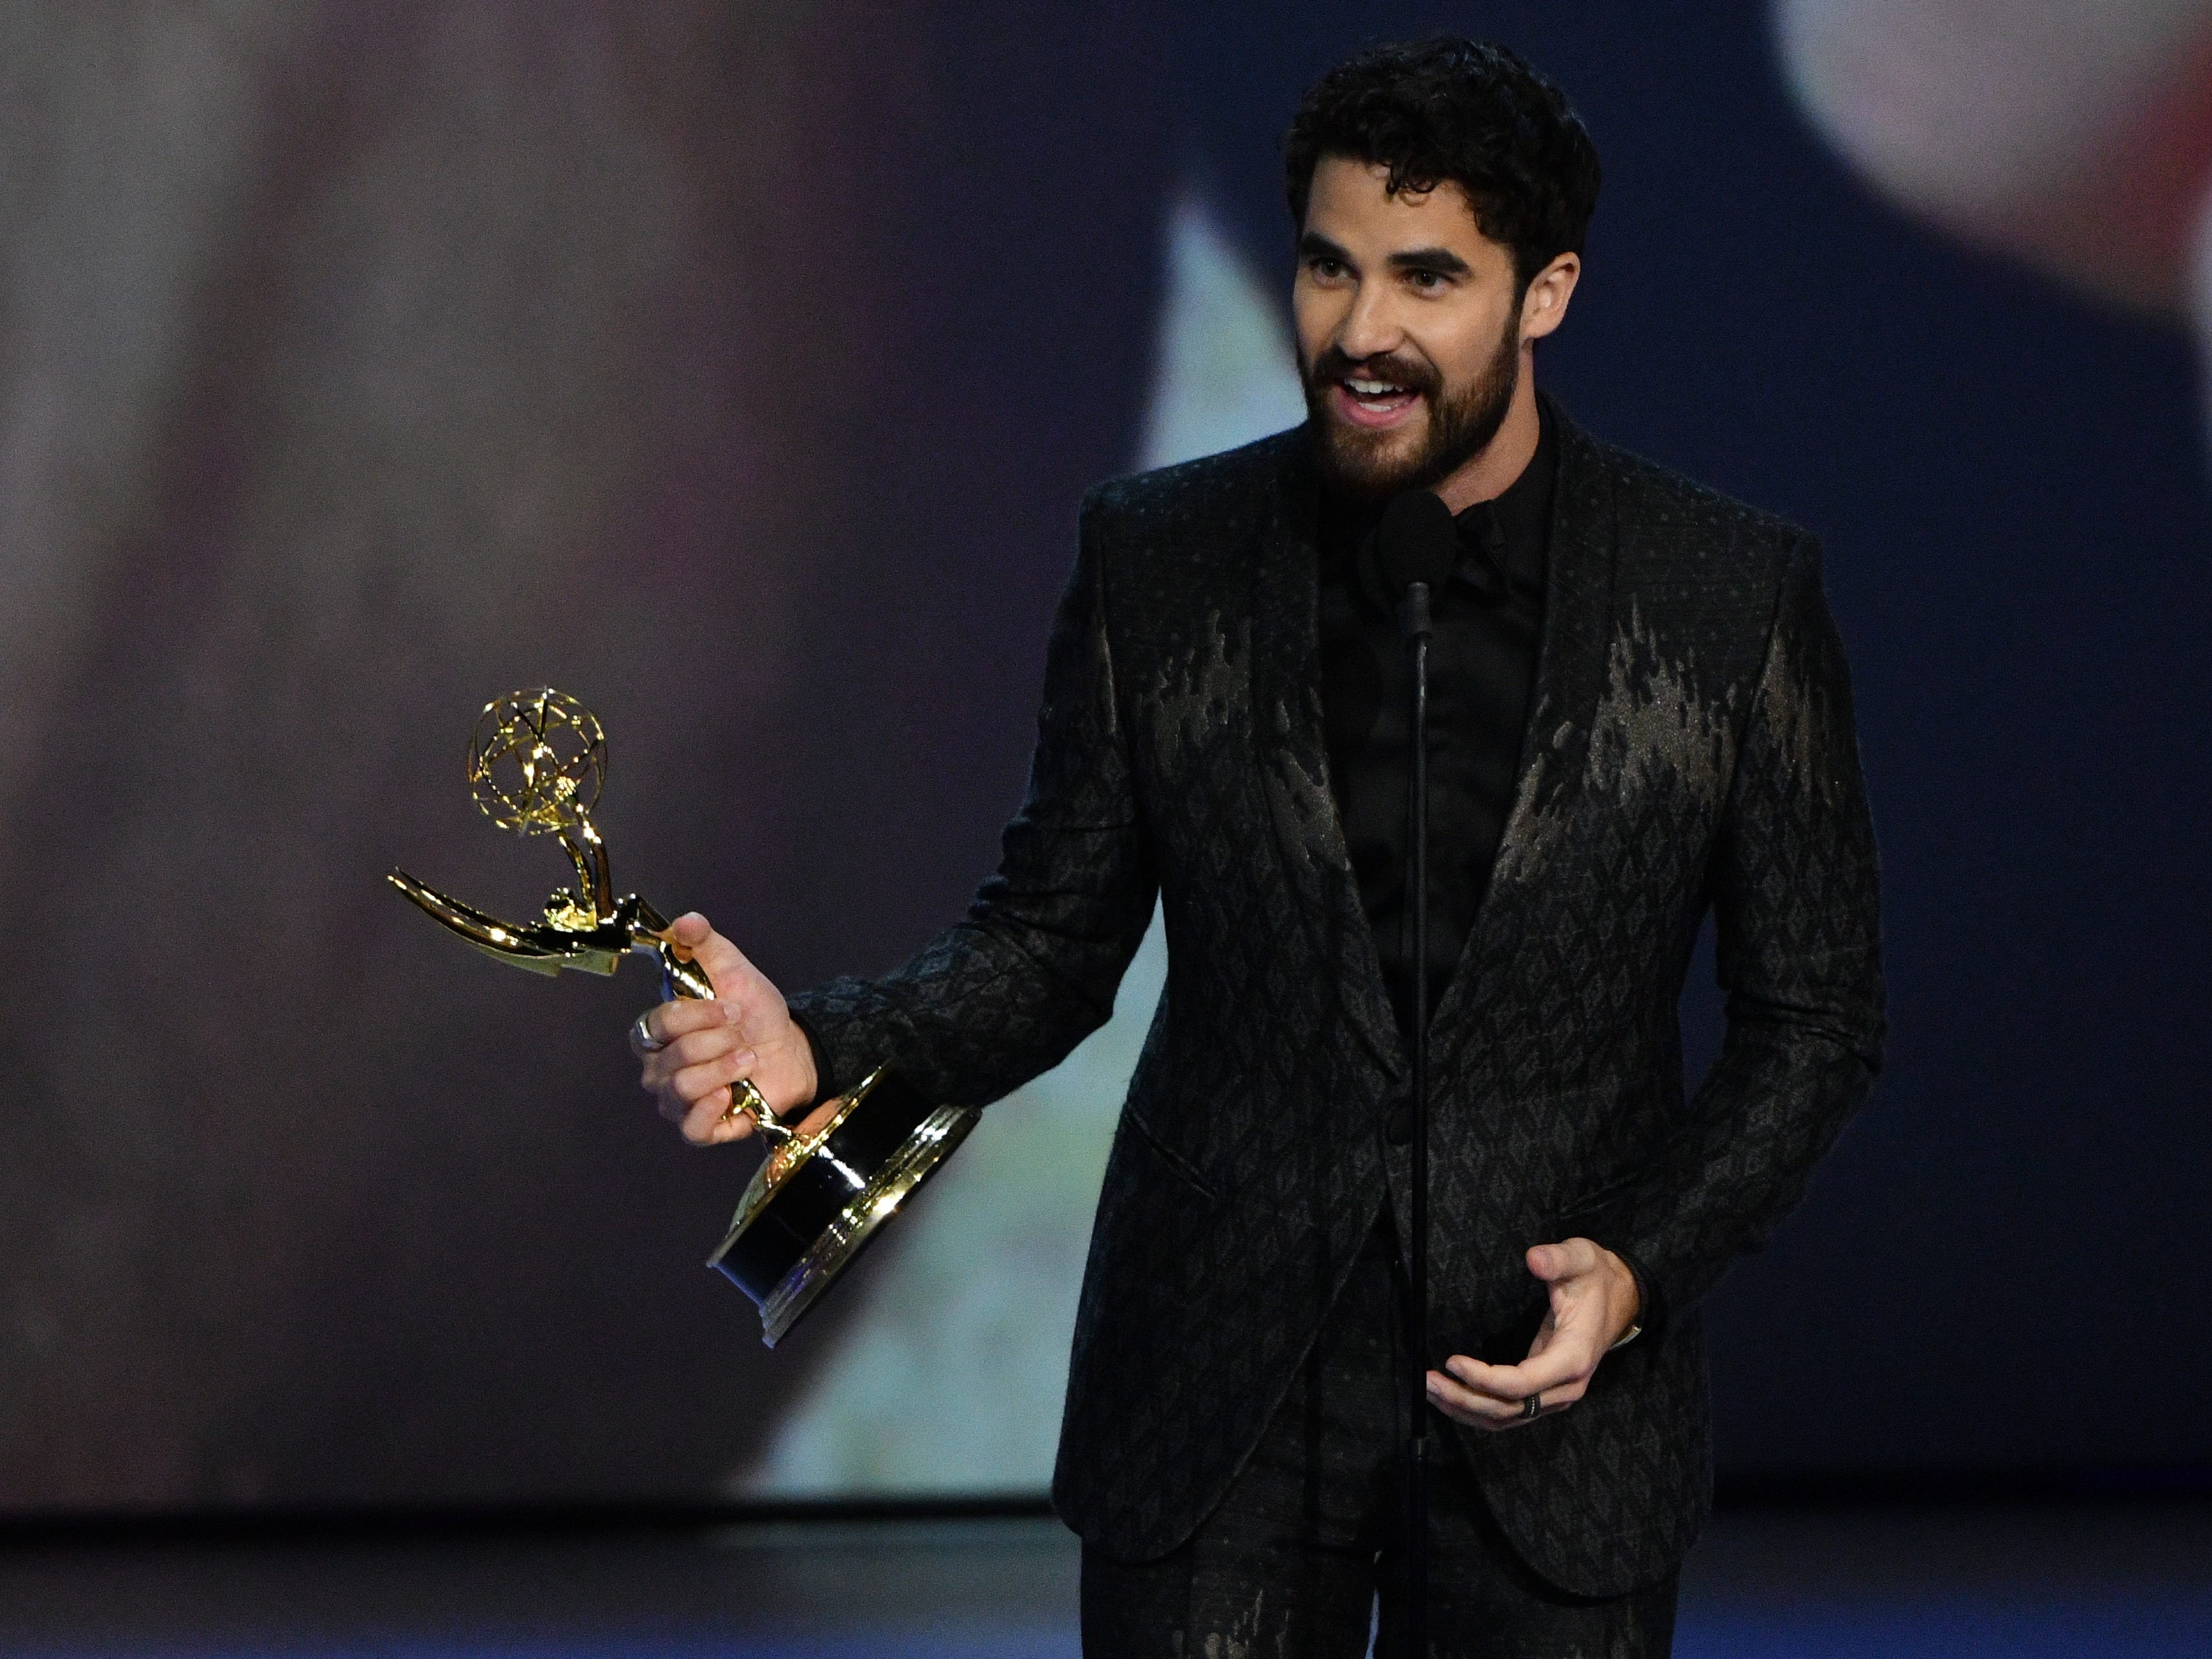 """Darren Criss accepts the award for lead actor in a limited series or movie for his role in """"The Assassination Of Gianni Versace: American Crime Story."""""""